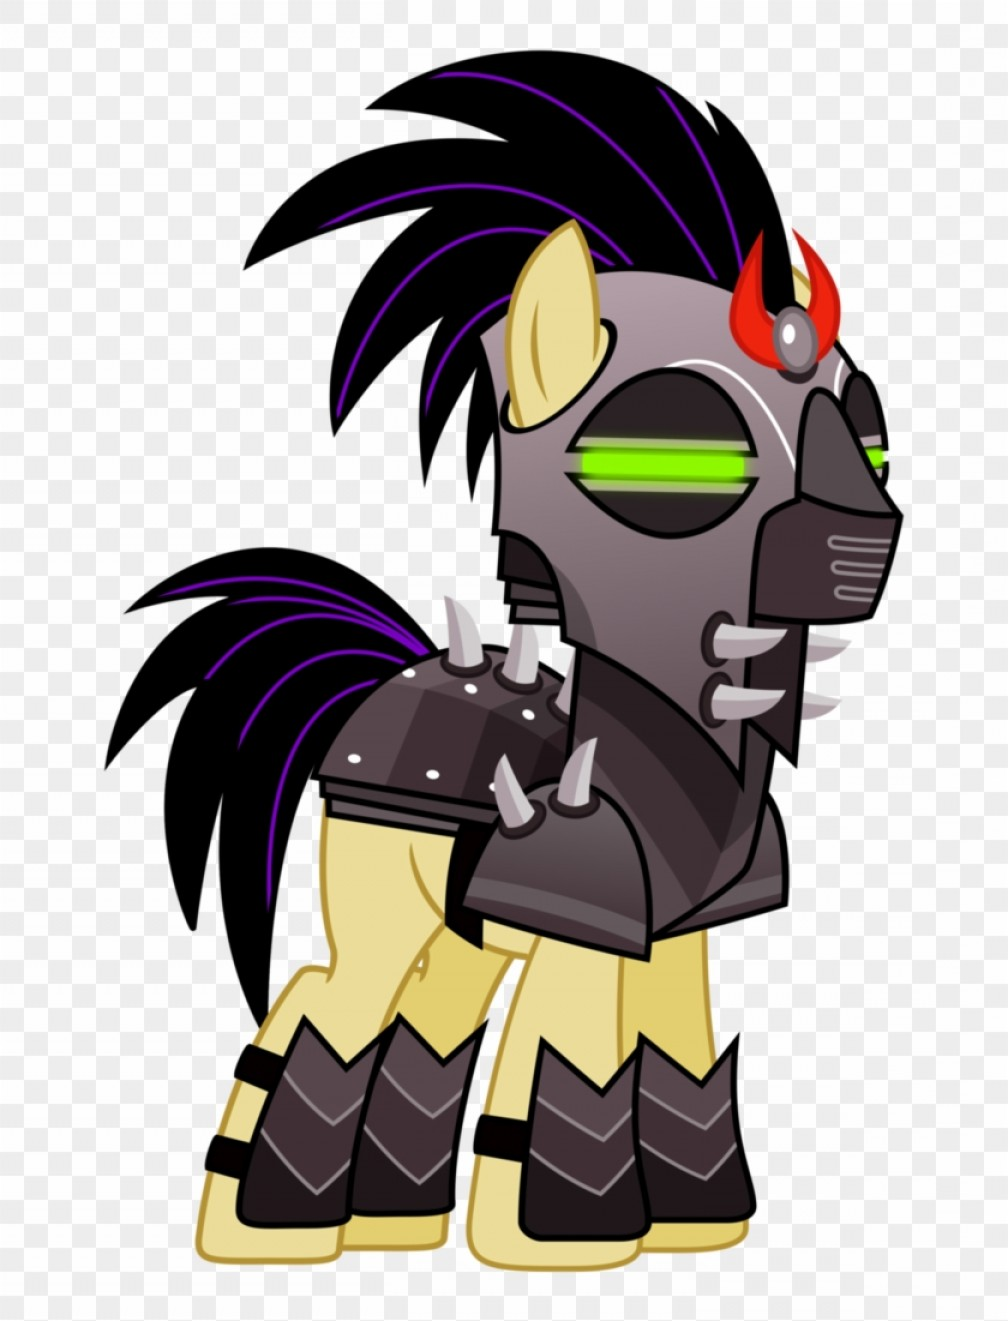 King Sombra Vector: Mihiknhkcrystal Empire Soldier By Cheezedoodle Mlp King Sombra Soldier